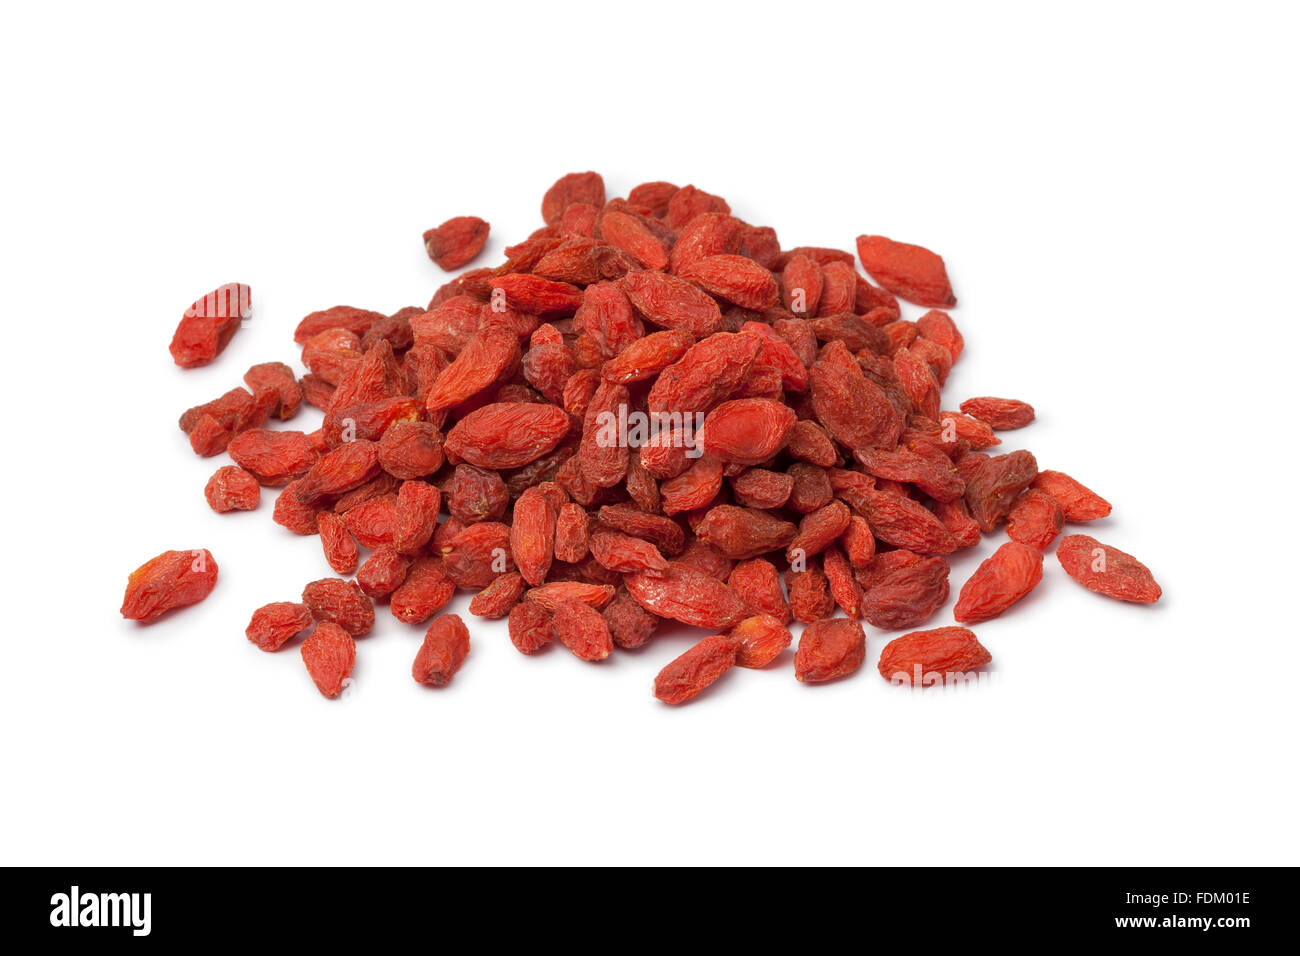 Heap of dried Goji berries on white background - Stock Image